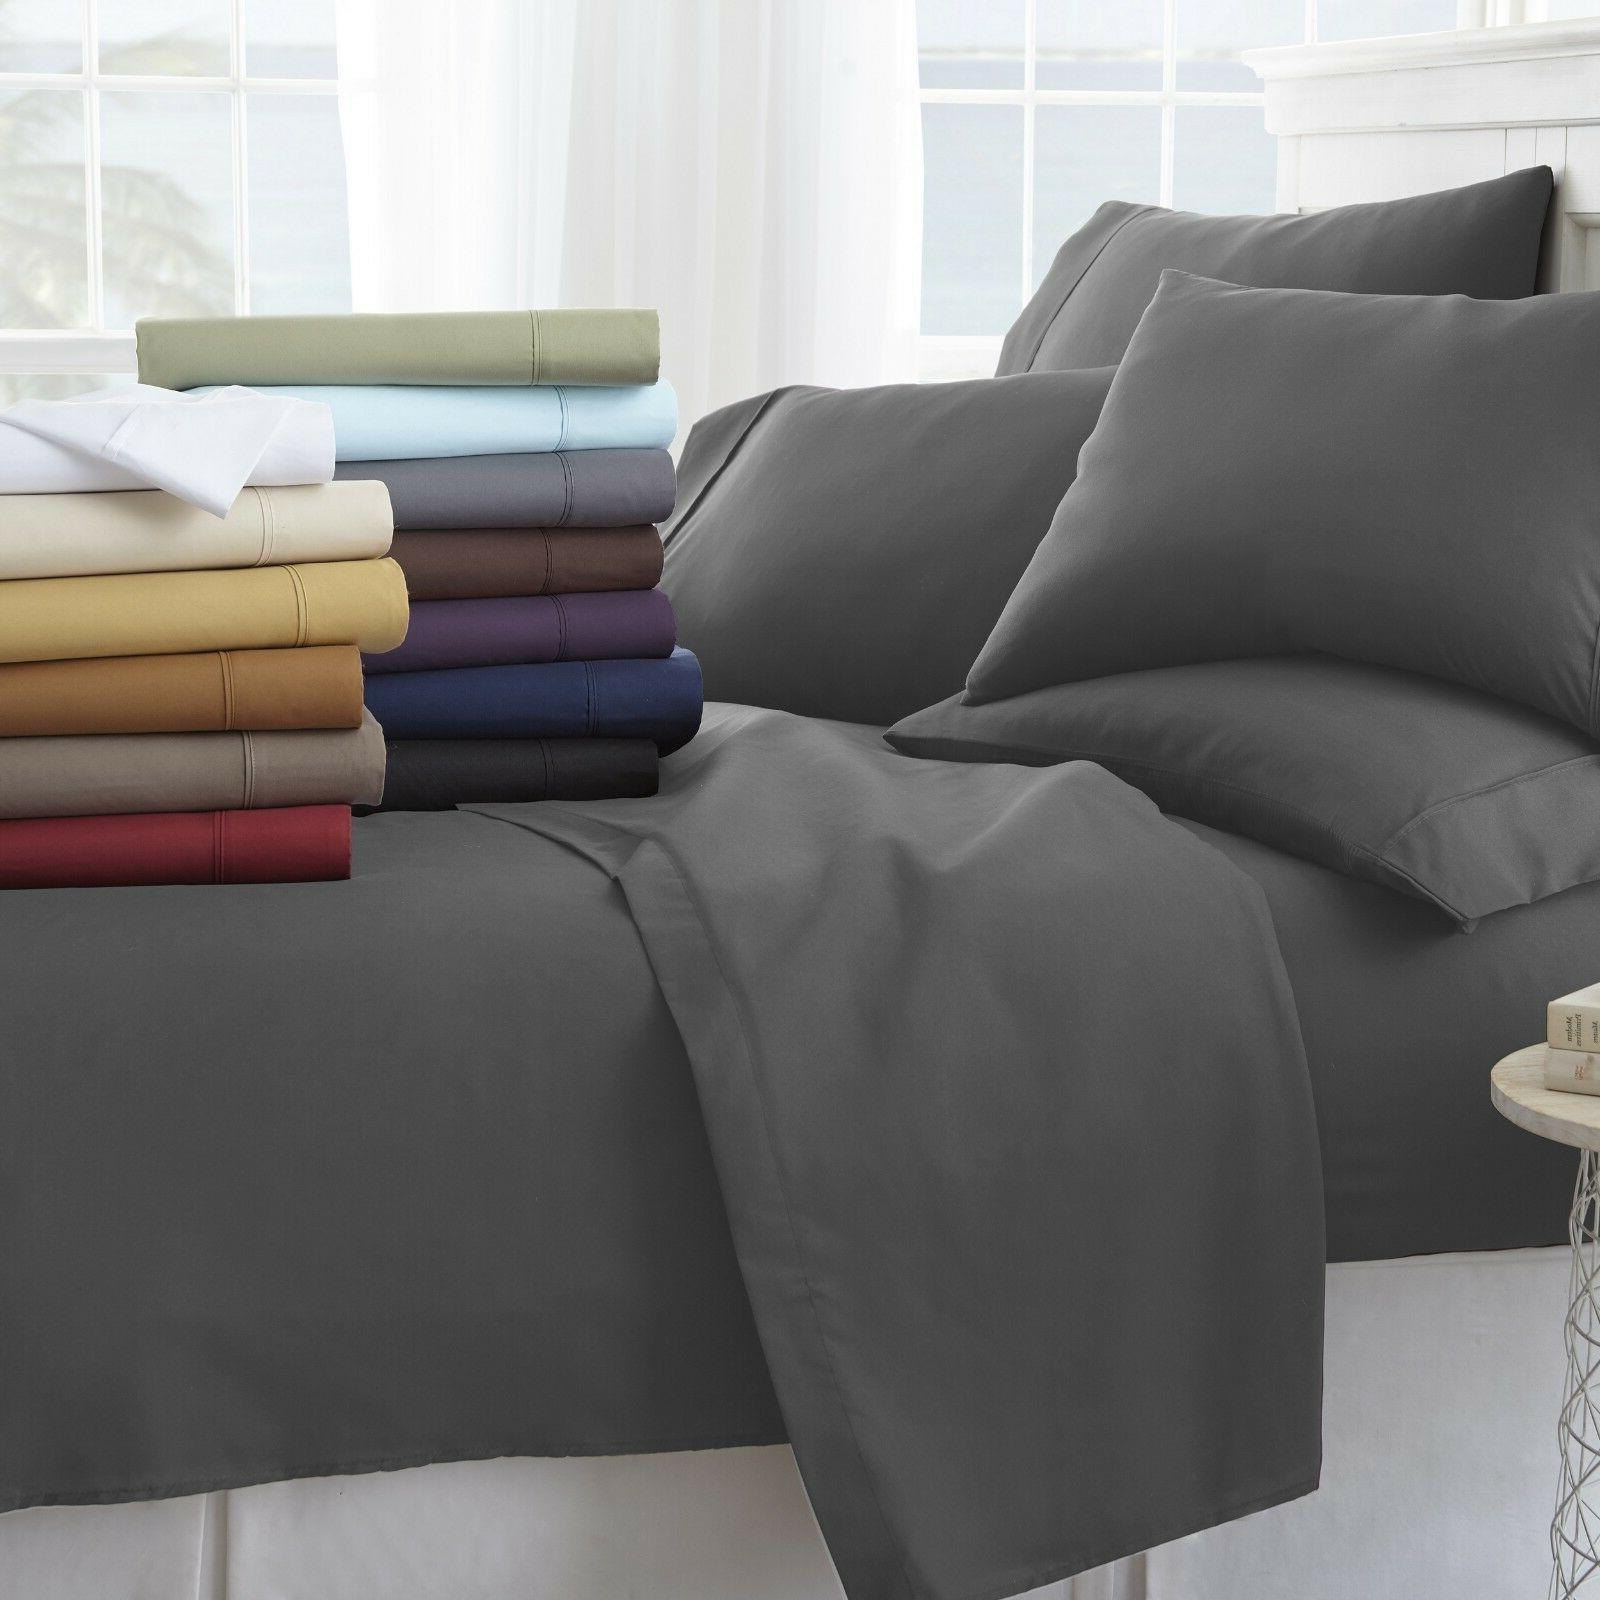 ultra soft cozy 6 piece bed sheet